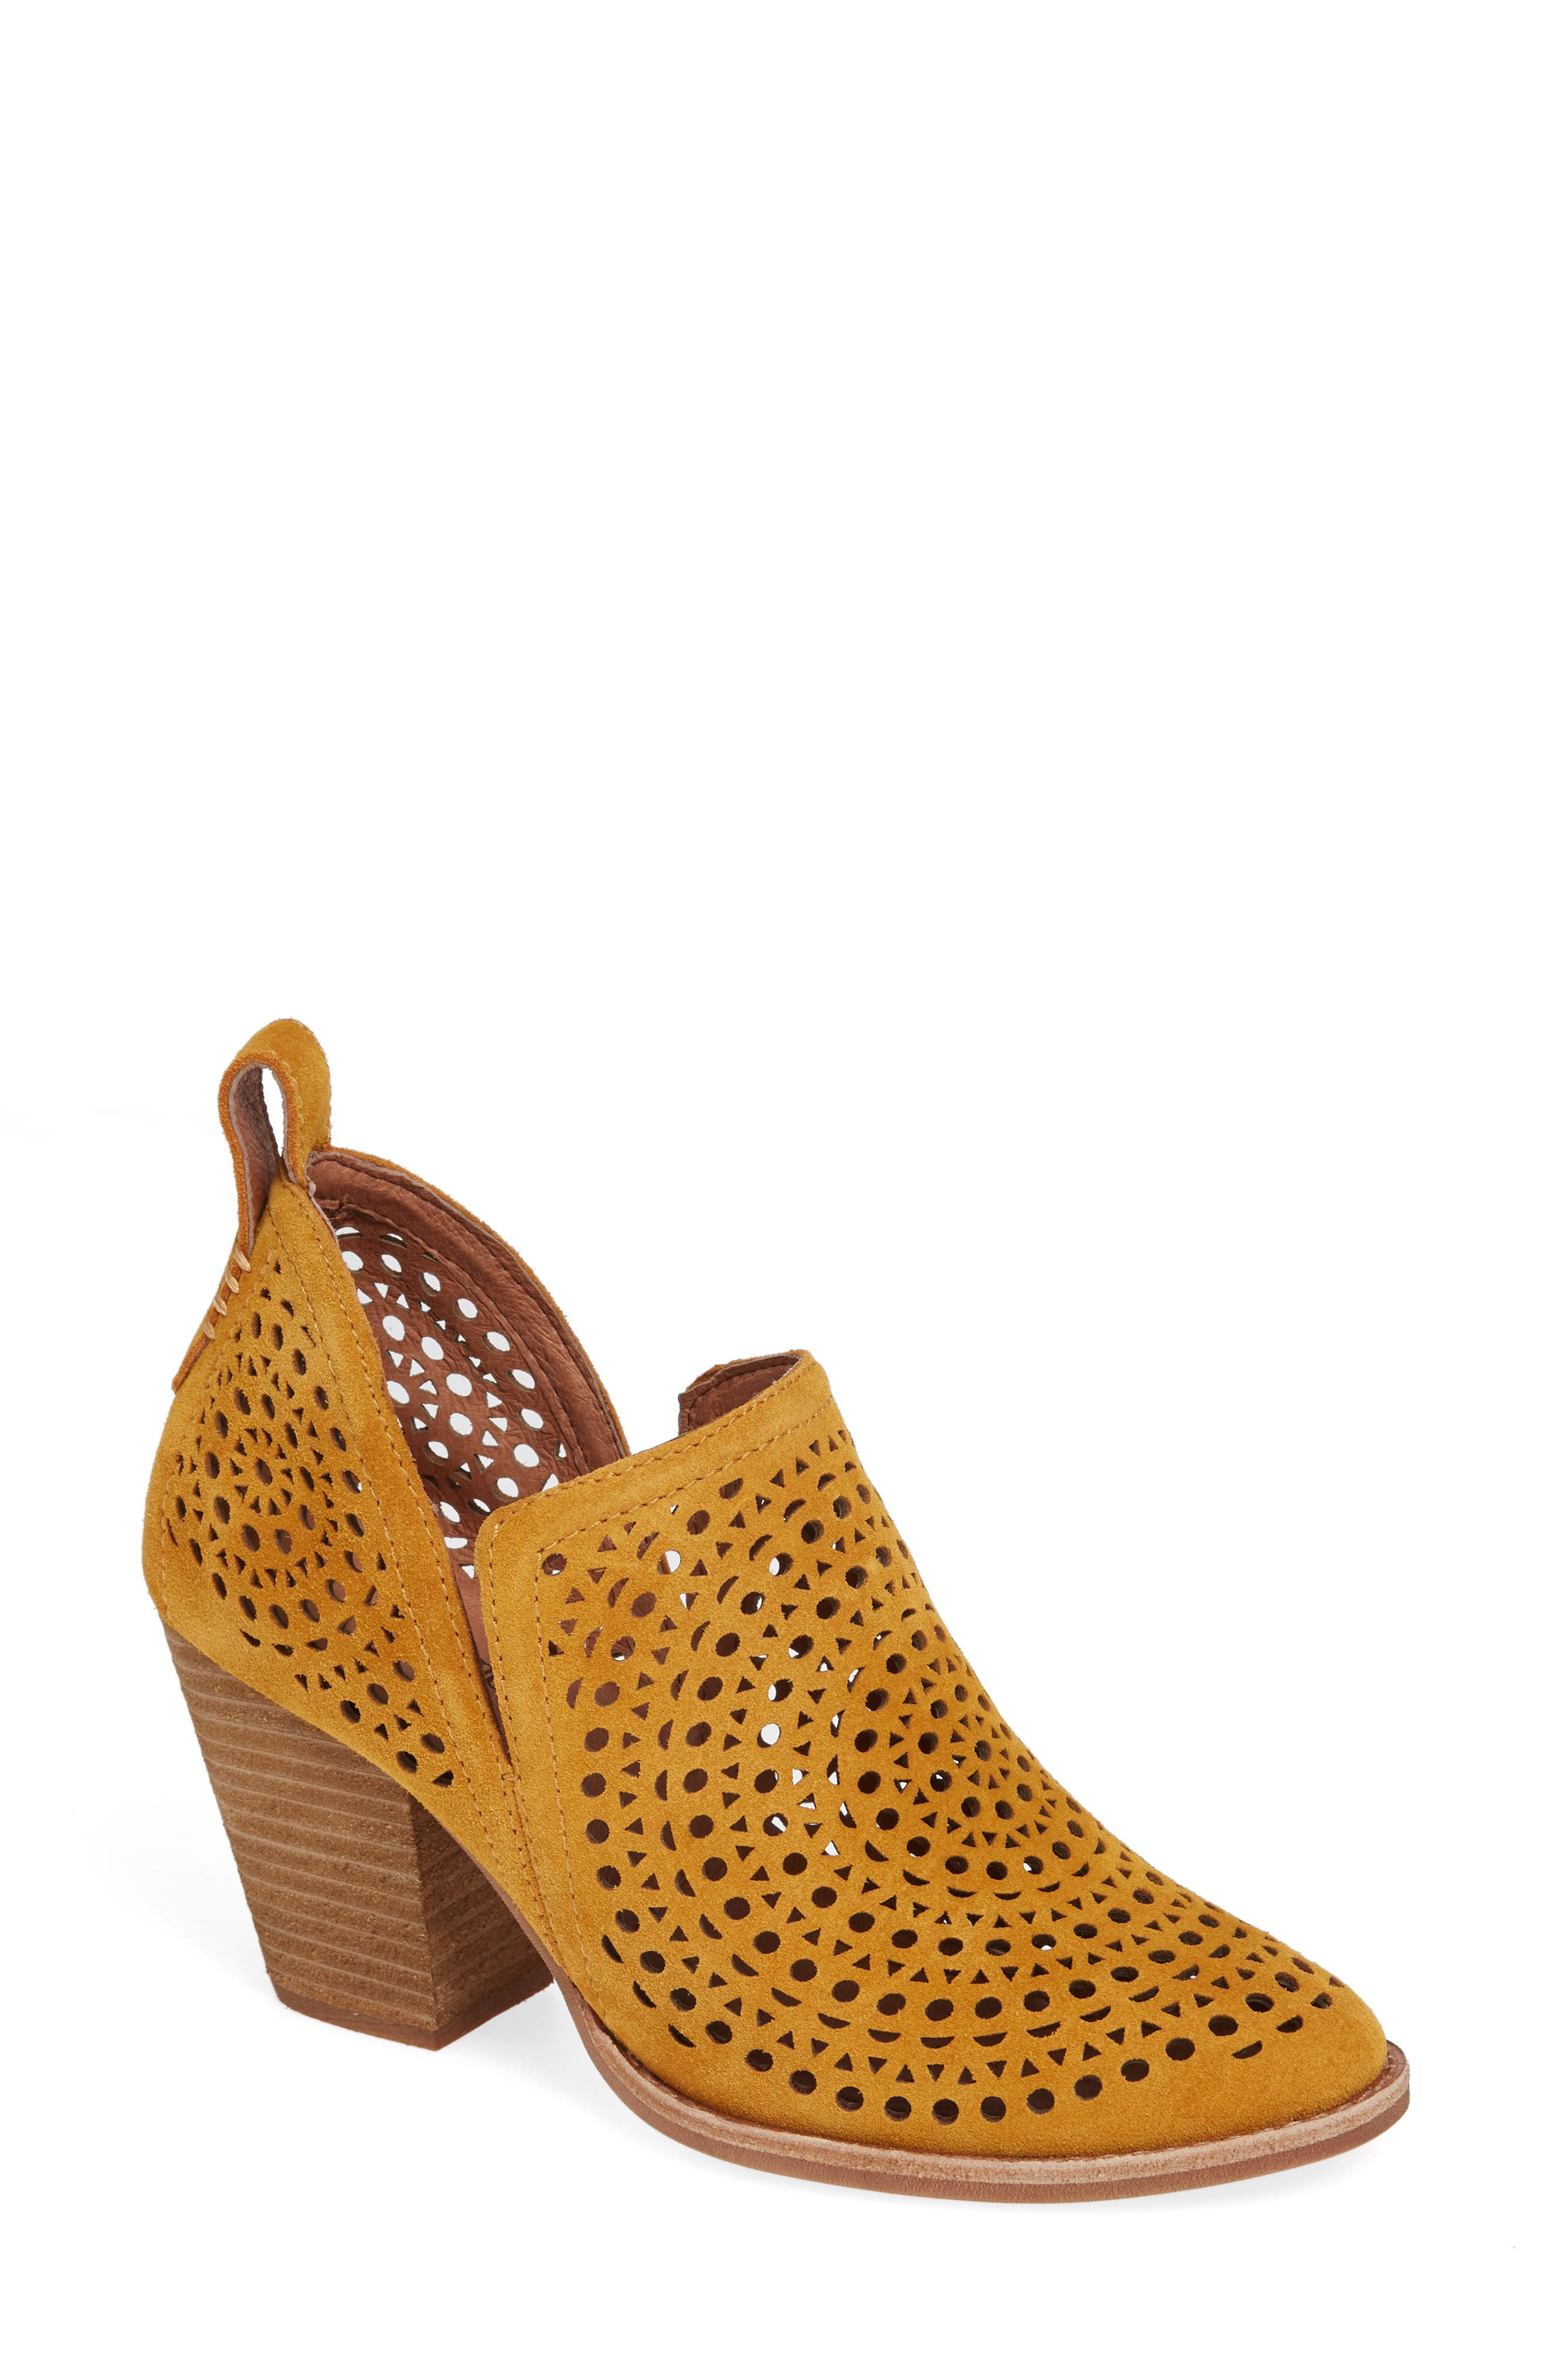 Rosalee Bootie,                             Main thumbnail 1, color,                             MUSTARD SUEDE